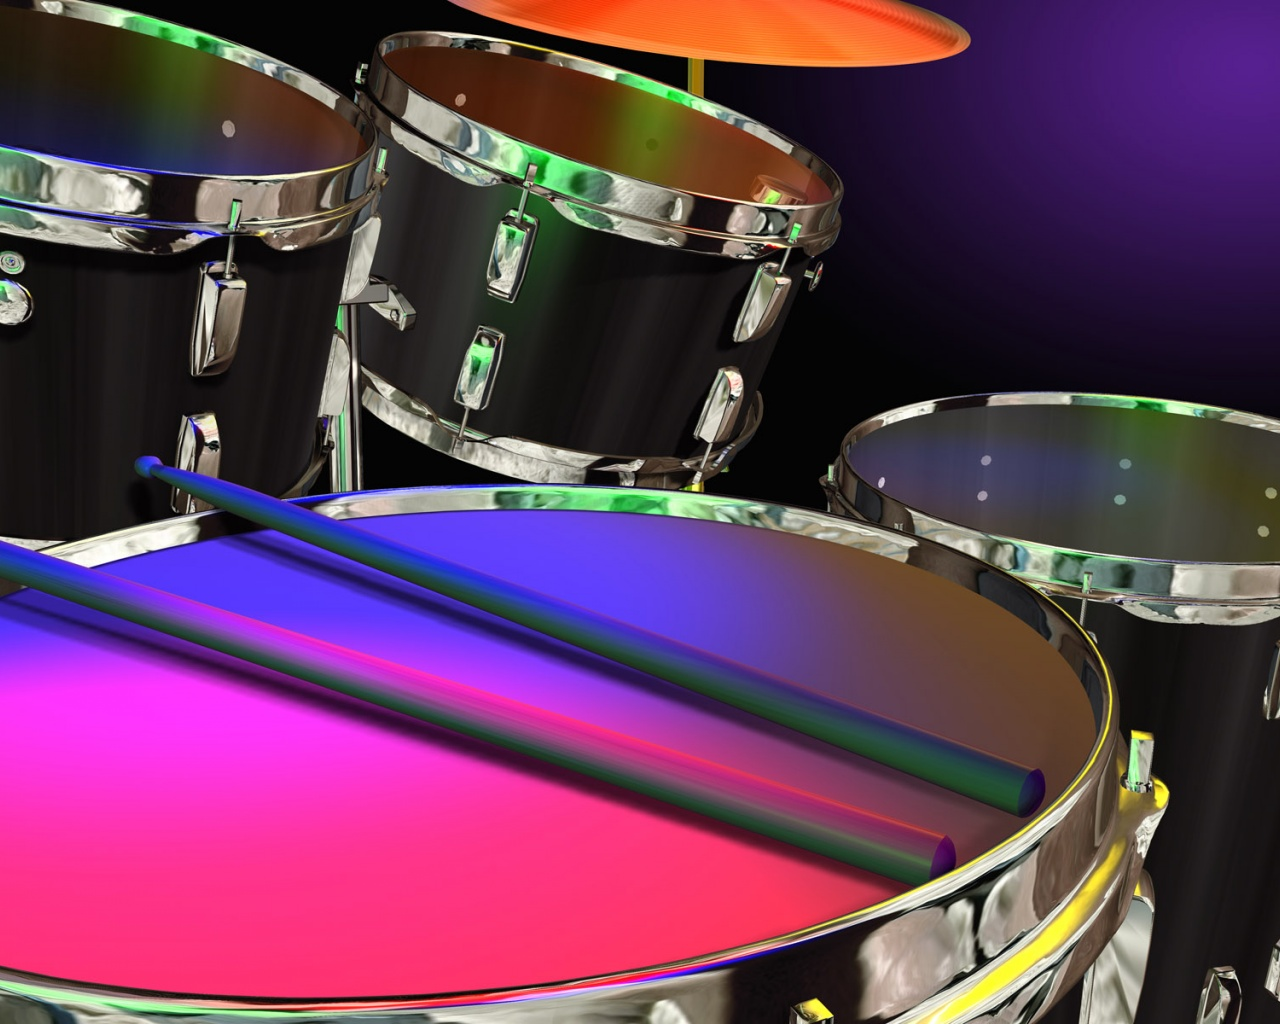 1280x1024 Drums In Color Desktop Pc And Mac Wallpaper